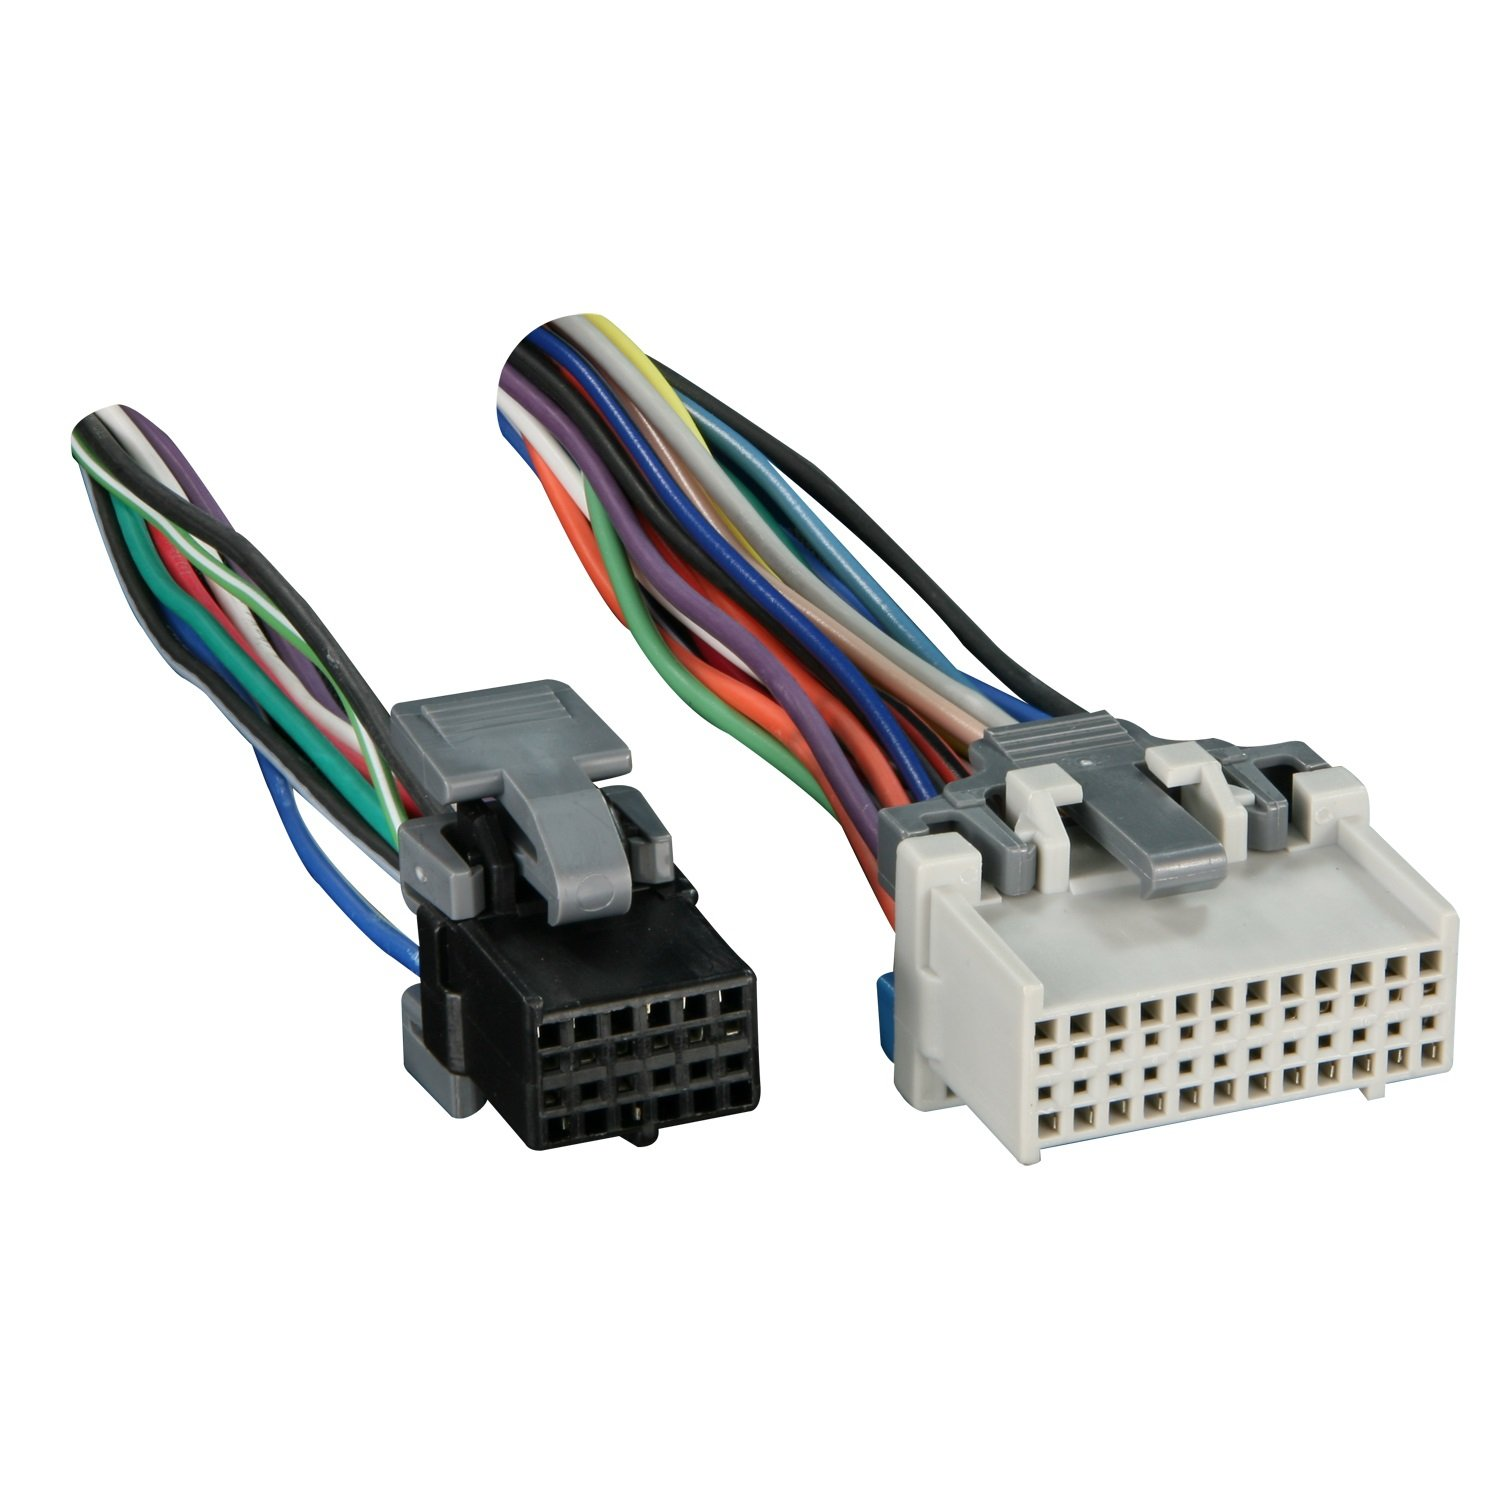 711log4bdML._SL1500_ amazon com metra turbowires 71 2003 1 wiring harness car electronics 2000 chevy silverado radio wiring harness at crackthecode.co